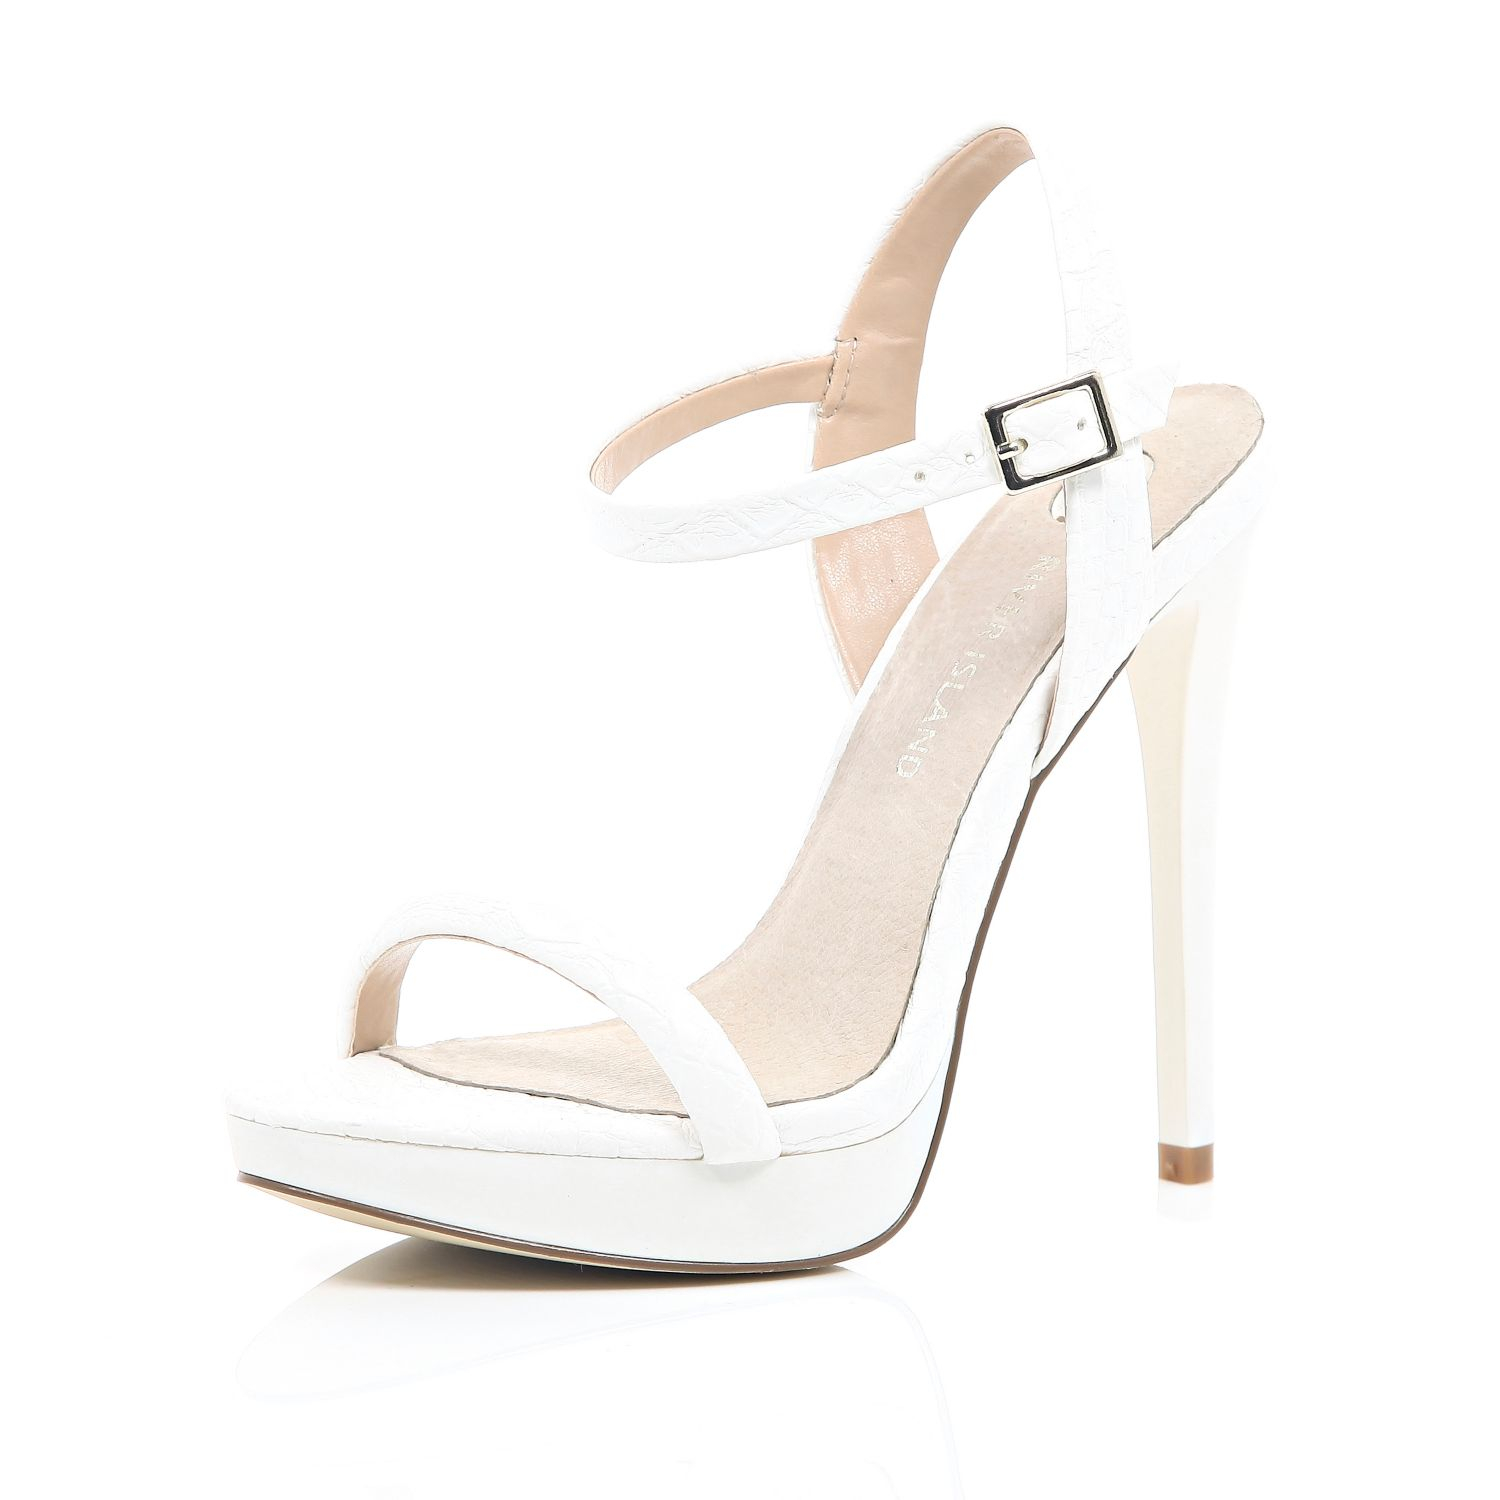 River Island Womens strappy barely there sandals